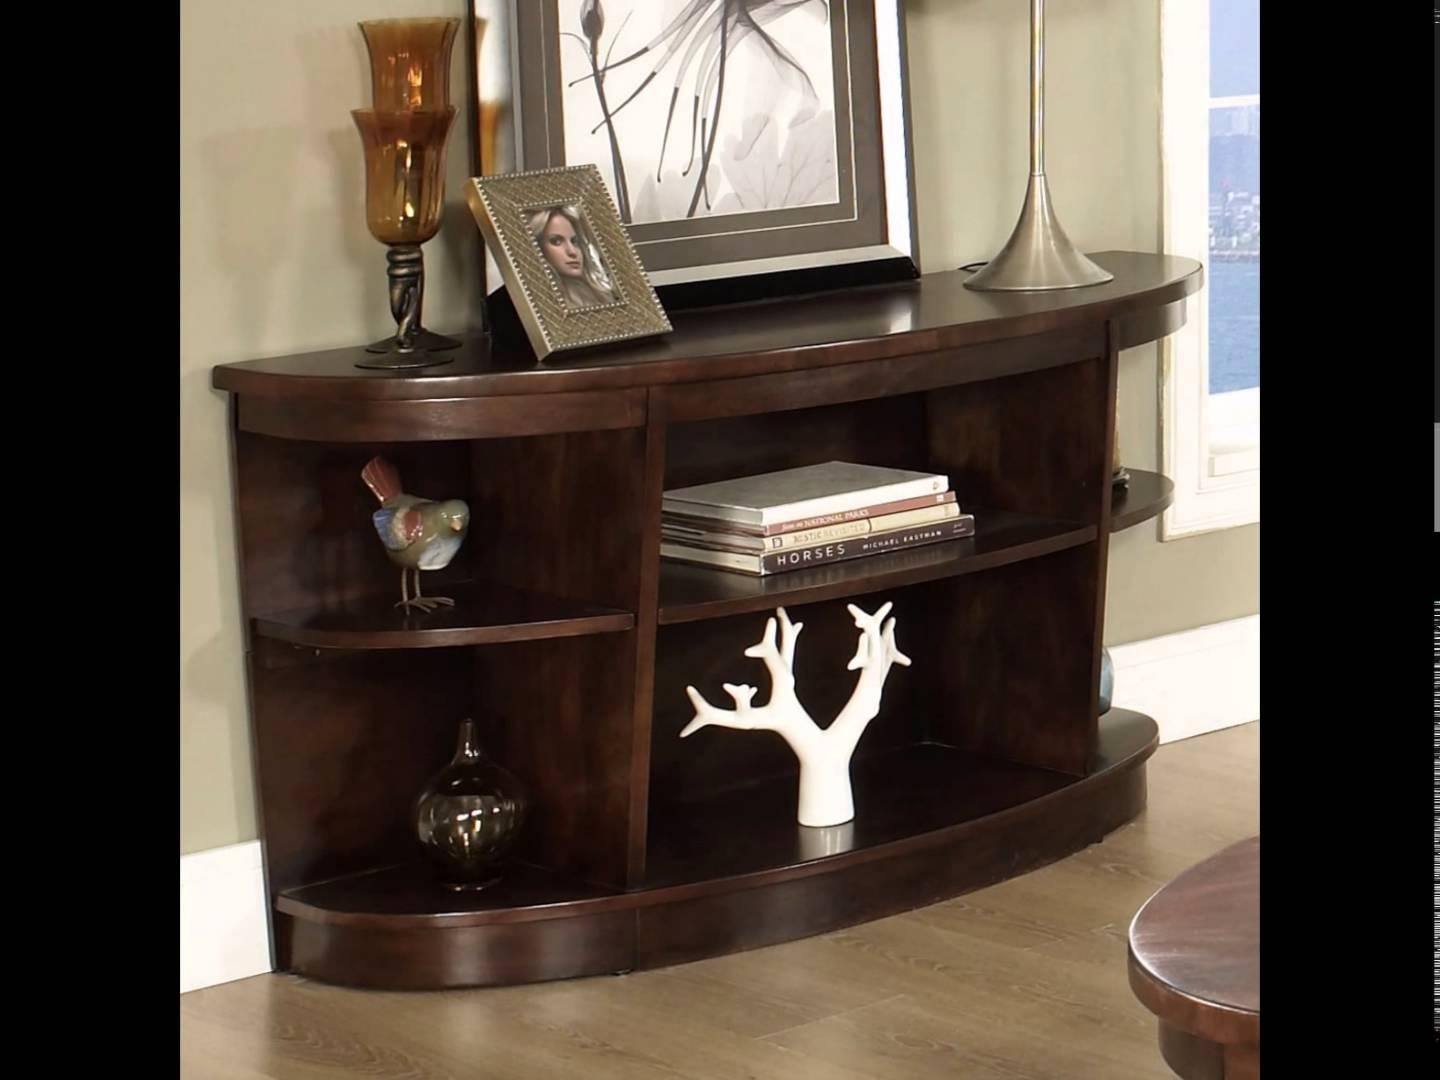 Sofa Table | Sofa Side Table | Sofa Table With Storage – Youtube For Sofa Side Tables With Storages (Image 23 of 25)